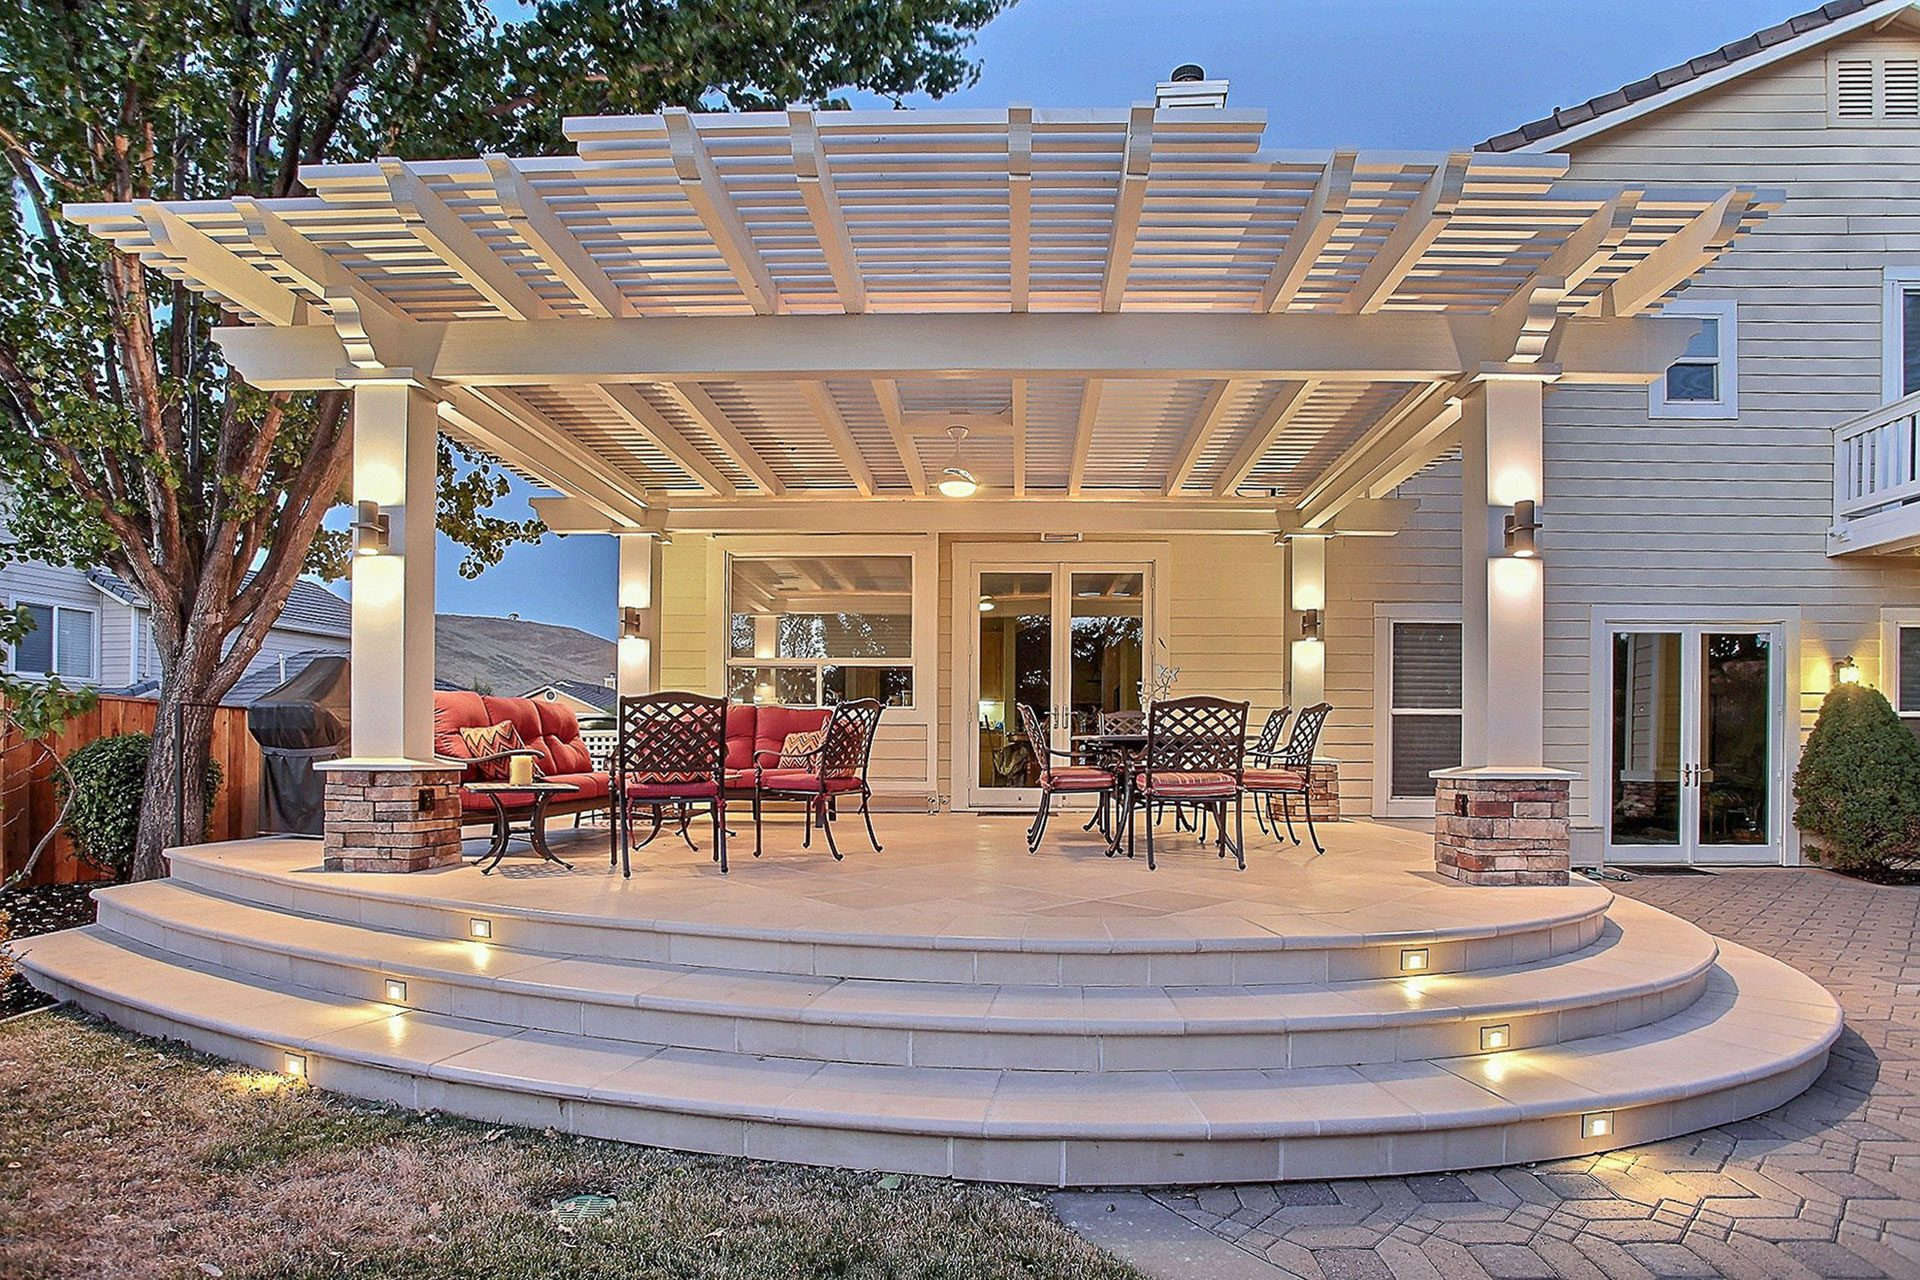 Patio after being remodeled into an entertainment space